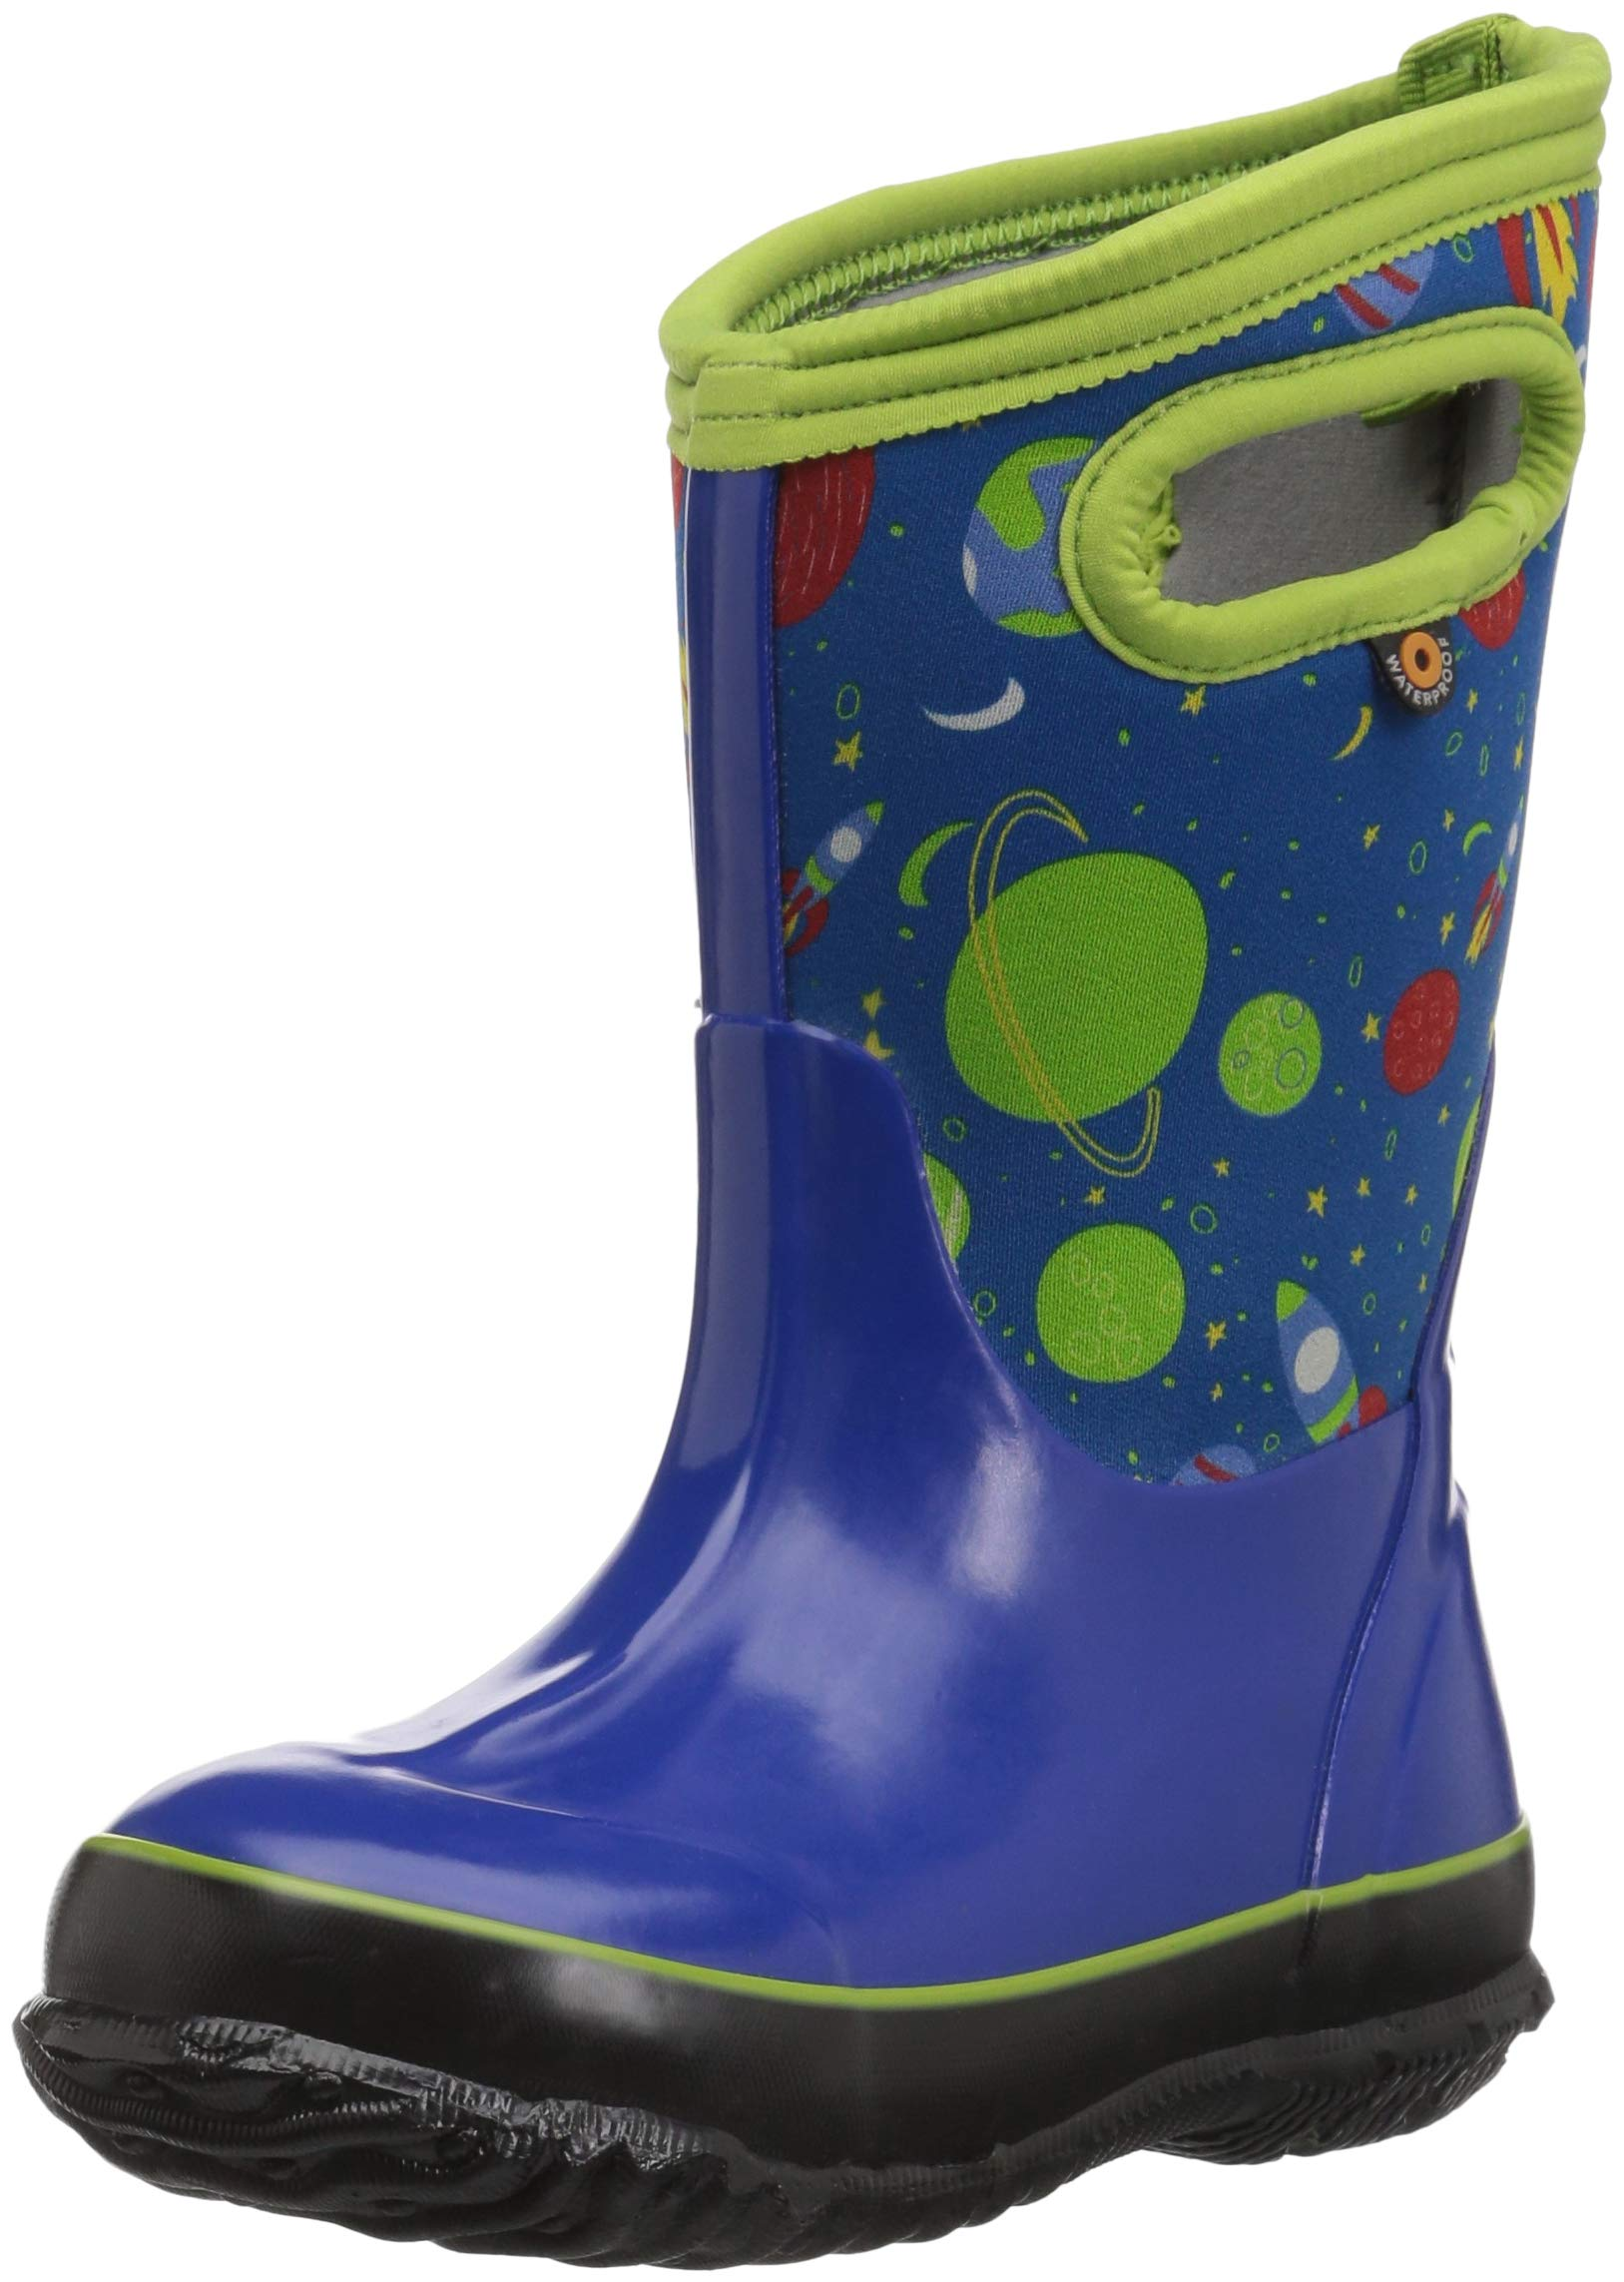 Bogs Classic High Waterproof Insulated Rubber Neoprene Rain Boot Snow, Space Blue/Multi, 11 M US Little Kid by Bogs (Image #1)